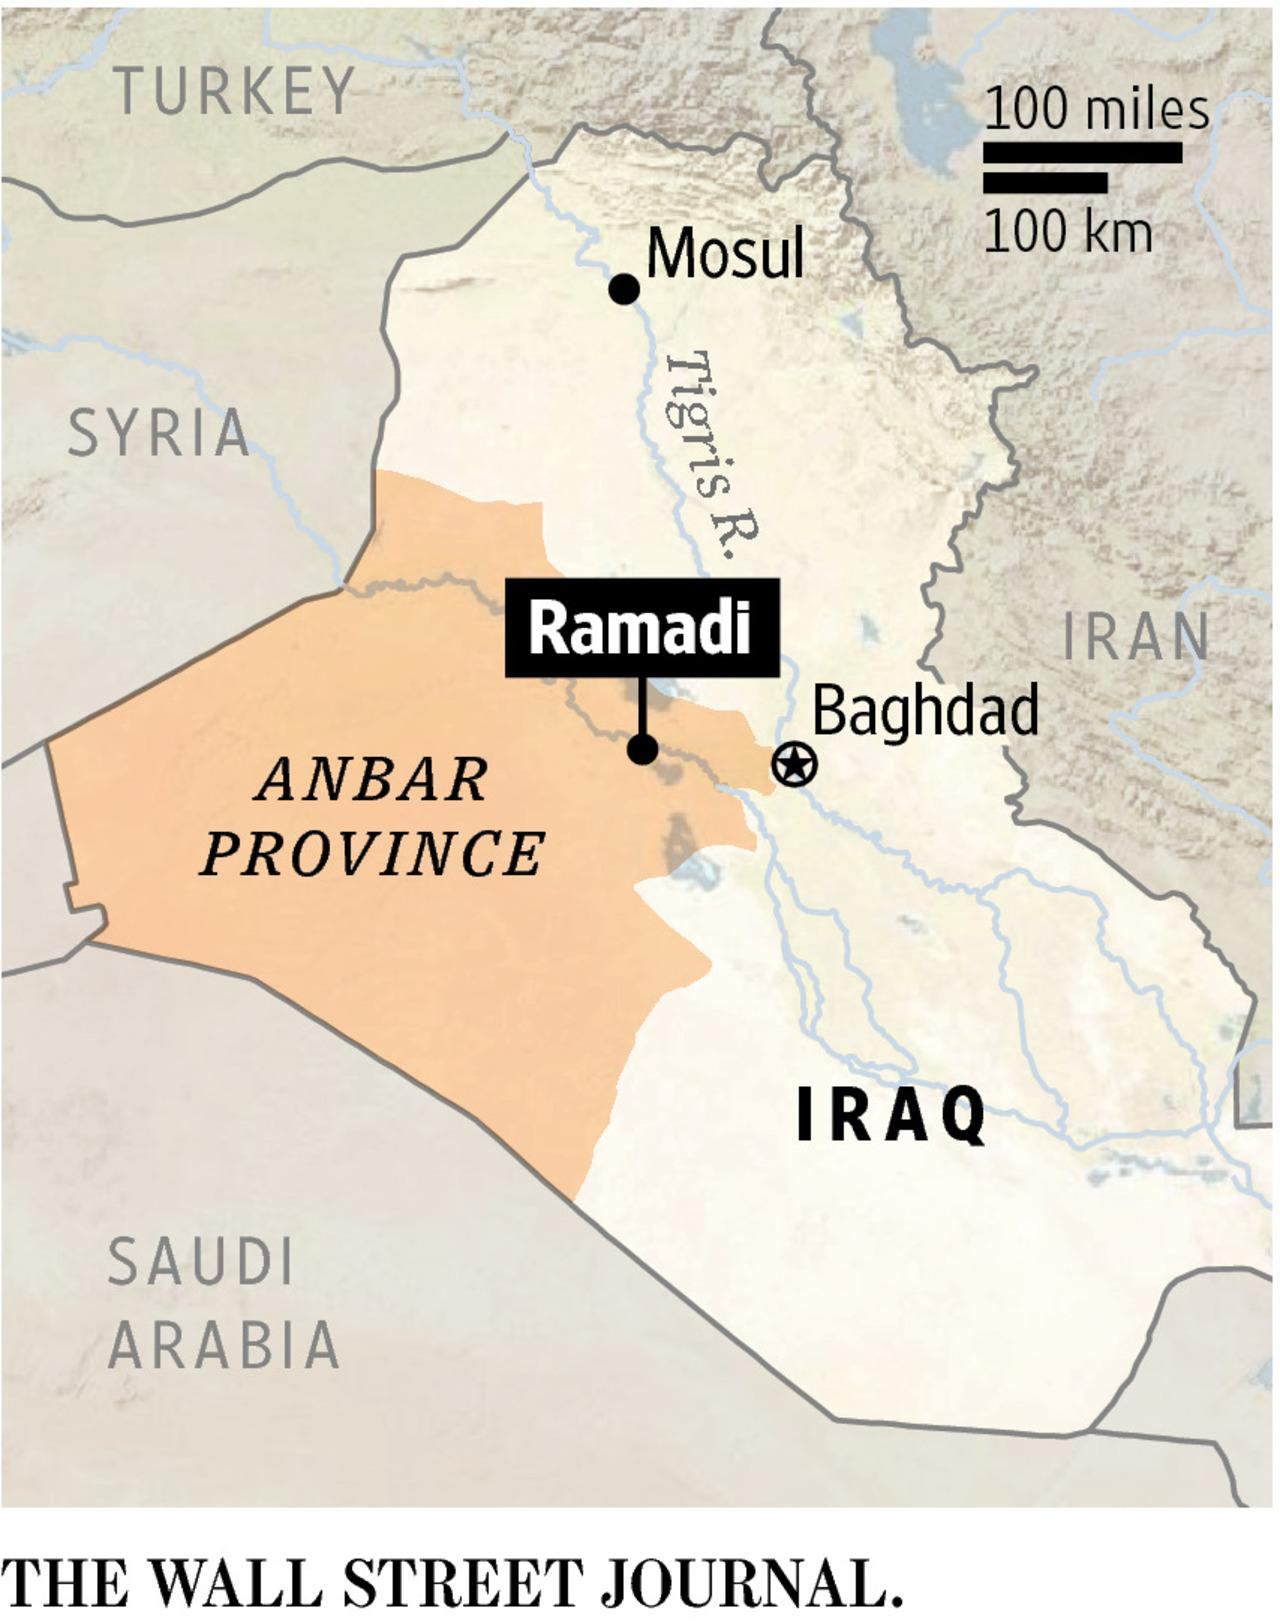 How Islamic State's win in Ramadi reveals new weapons, tactical sophistication and prowess: http://t.co/kbEBDVG94n